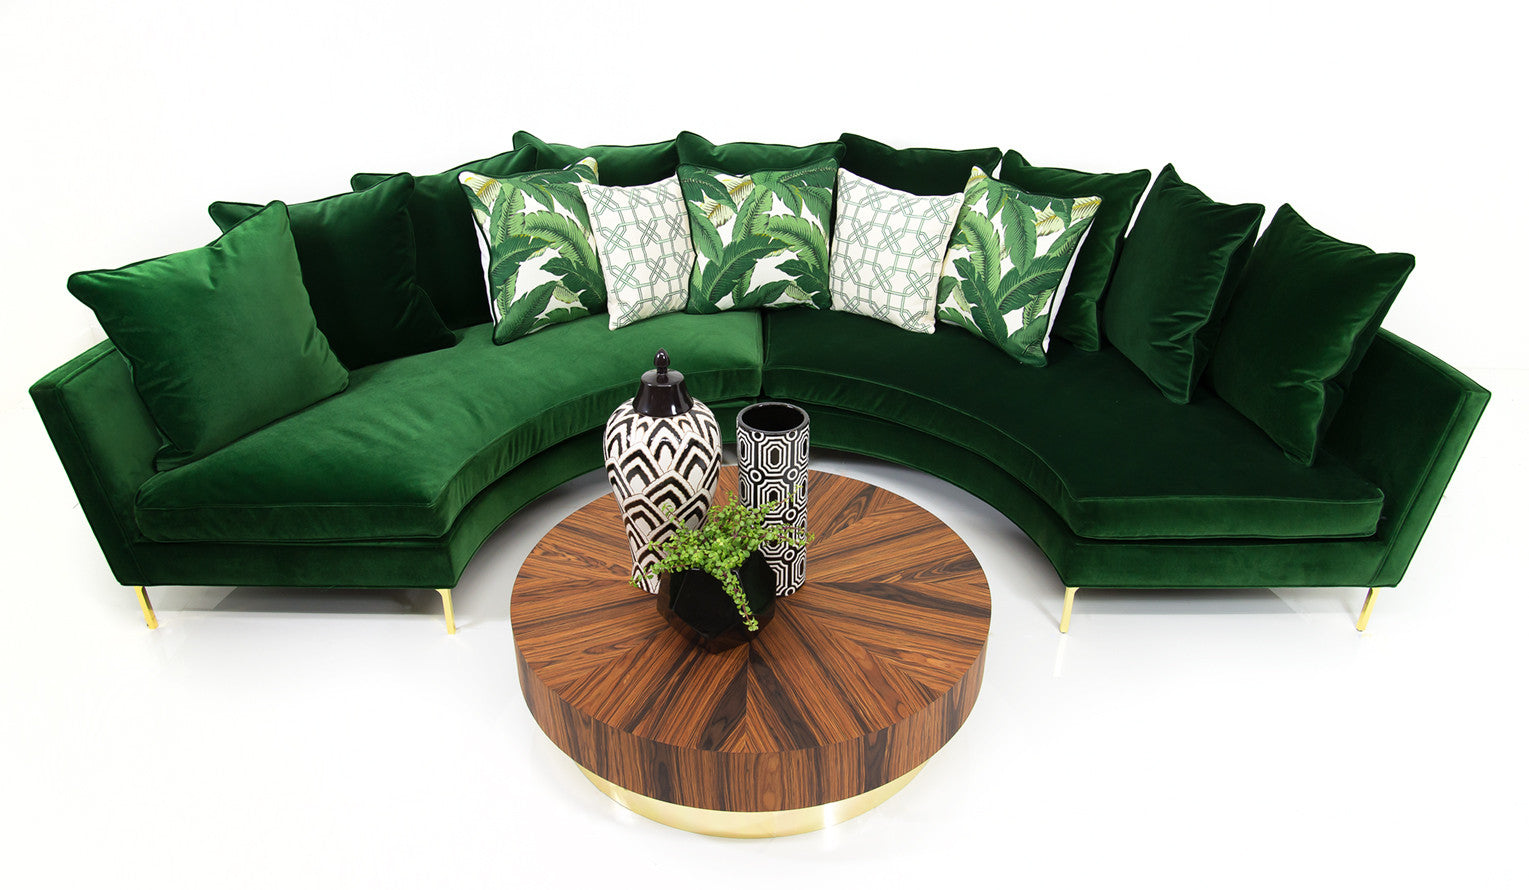 couches couch green photos room emerald rooms velvet picture of dark buy design living ideas sofas sectional designld sofa